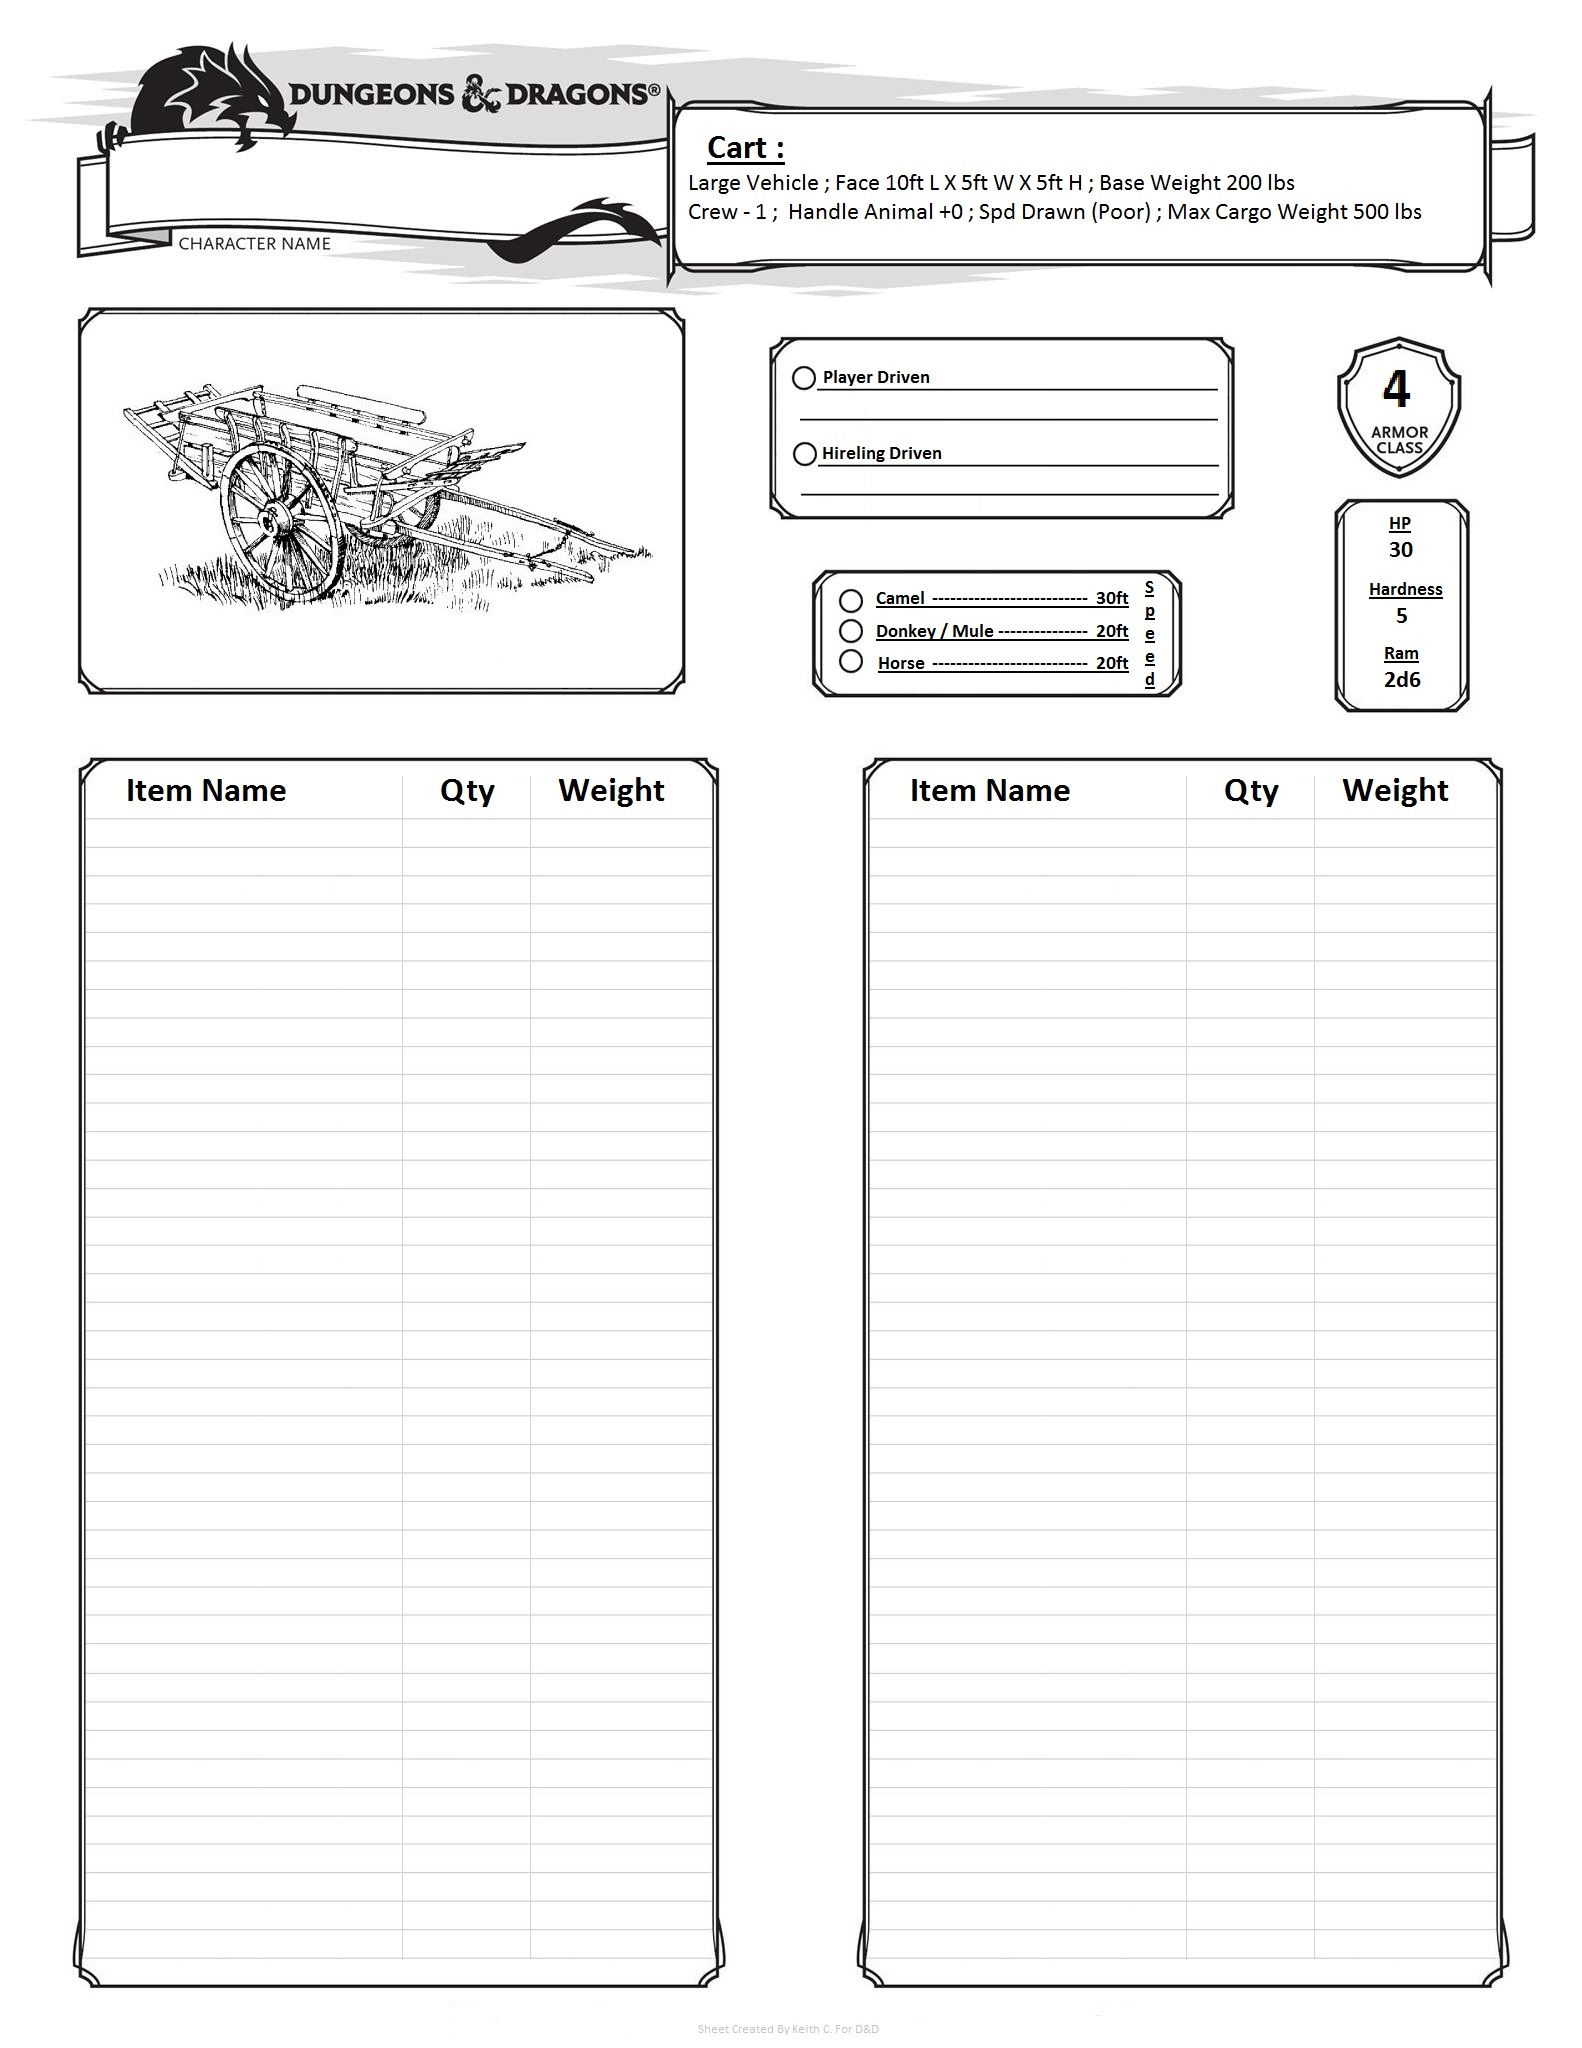 Dungeons Amp Dragons Inventory Sheet For Carts